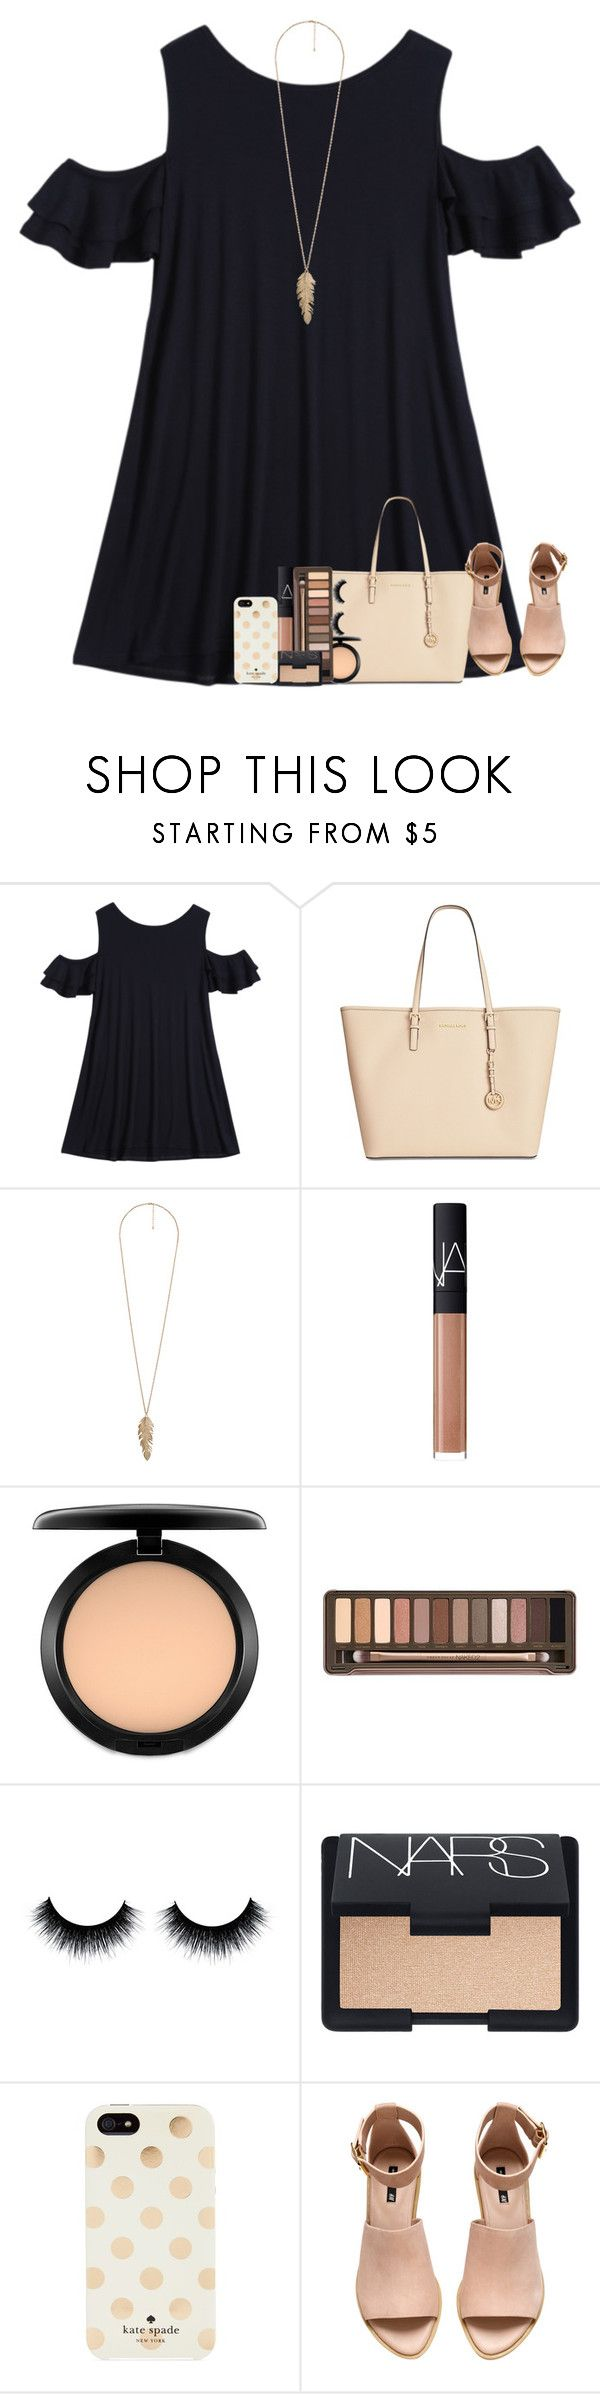 """If The Whole World Was Watching, I'd Still Dance With You"" by theafergusma ❤ liked on Polyvore featuring Michael Kors, Forever 21, NARS Cosmetics, MAC Cosmetics, Urban Decay, Kate Spade and H&M"